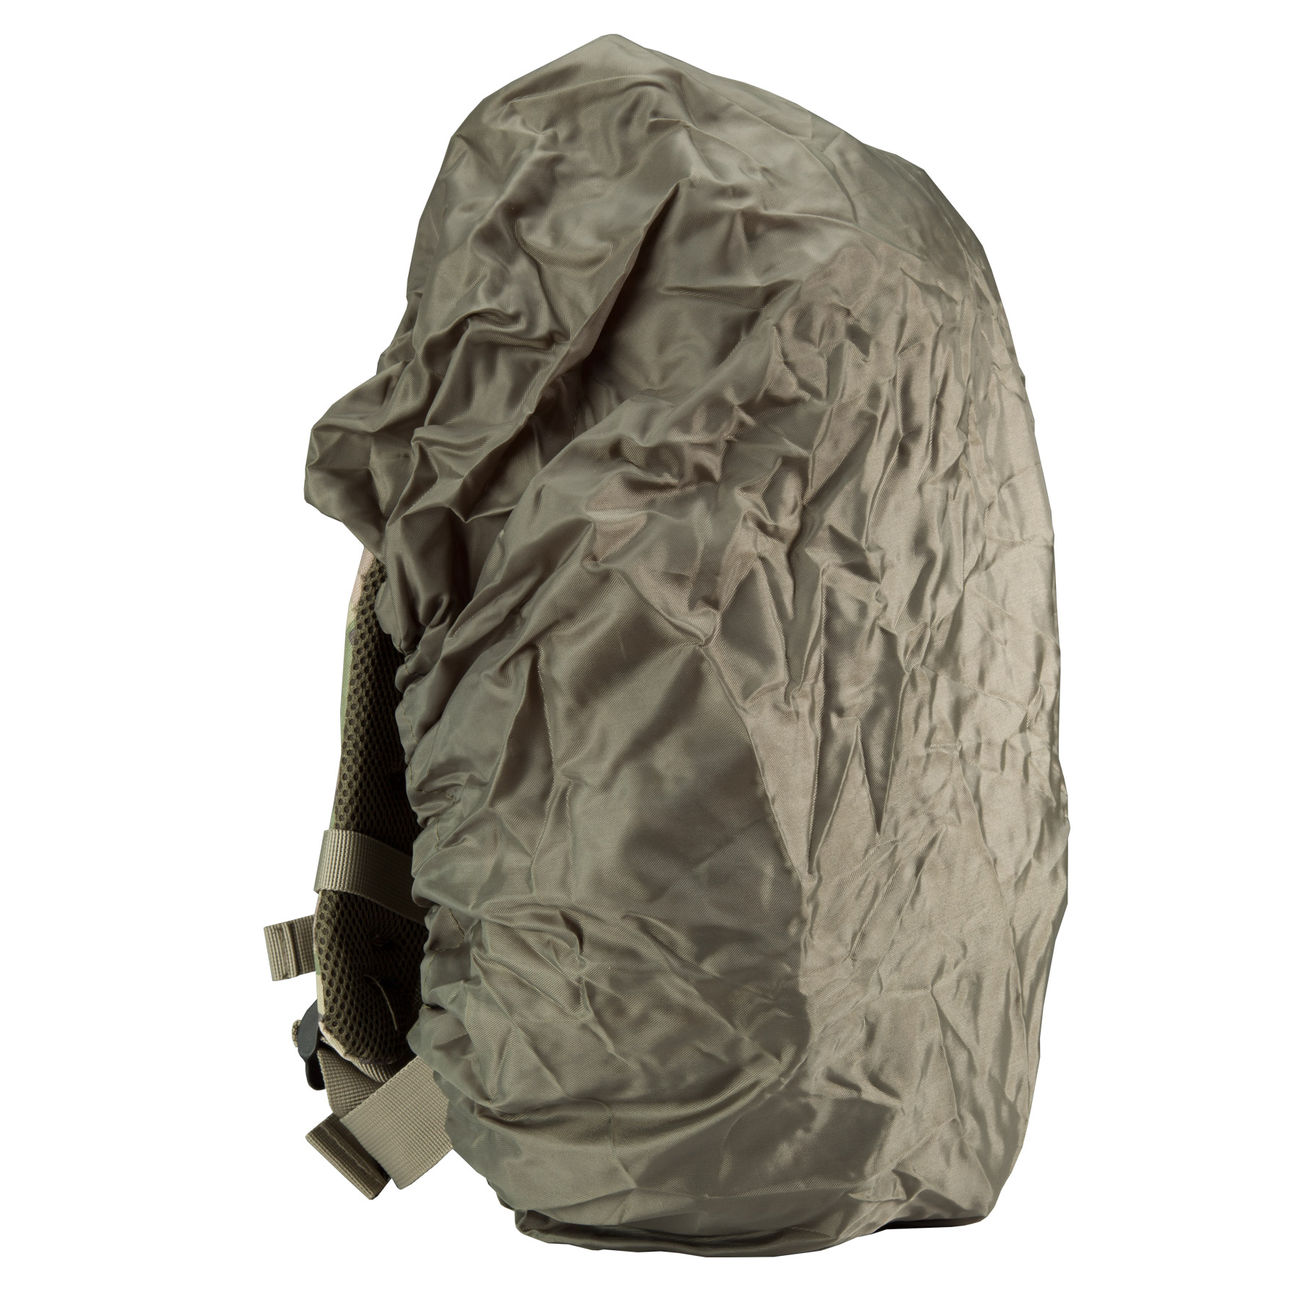 MFH Rucksack Recon I operation camo 4